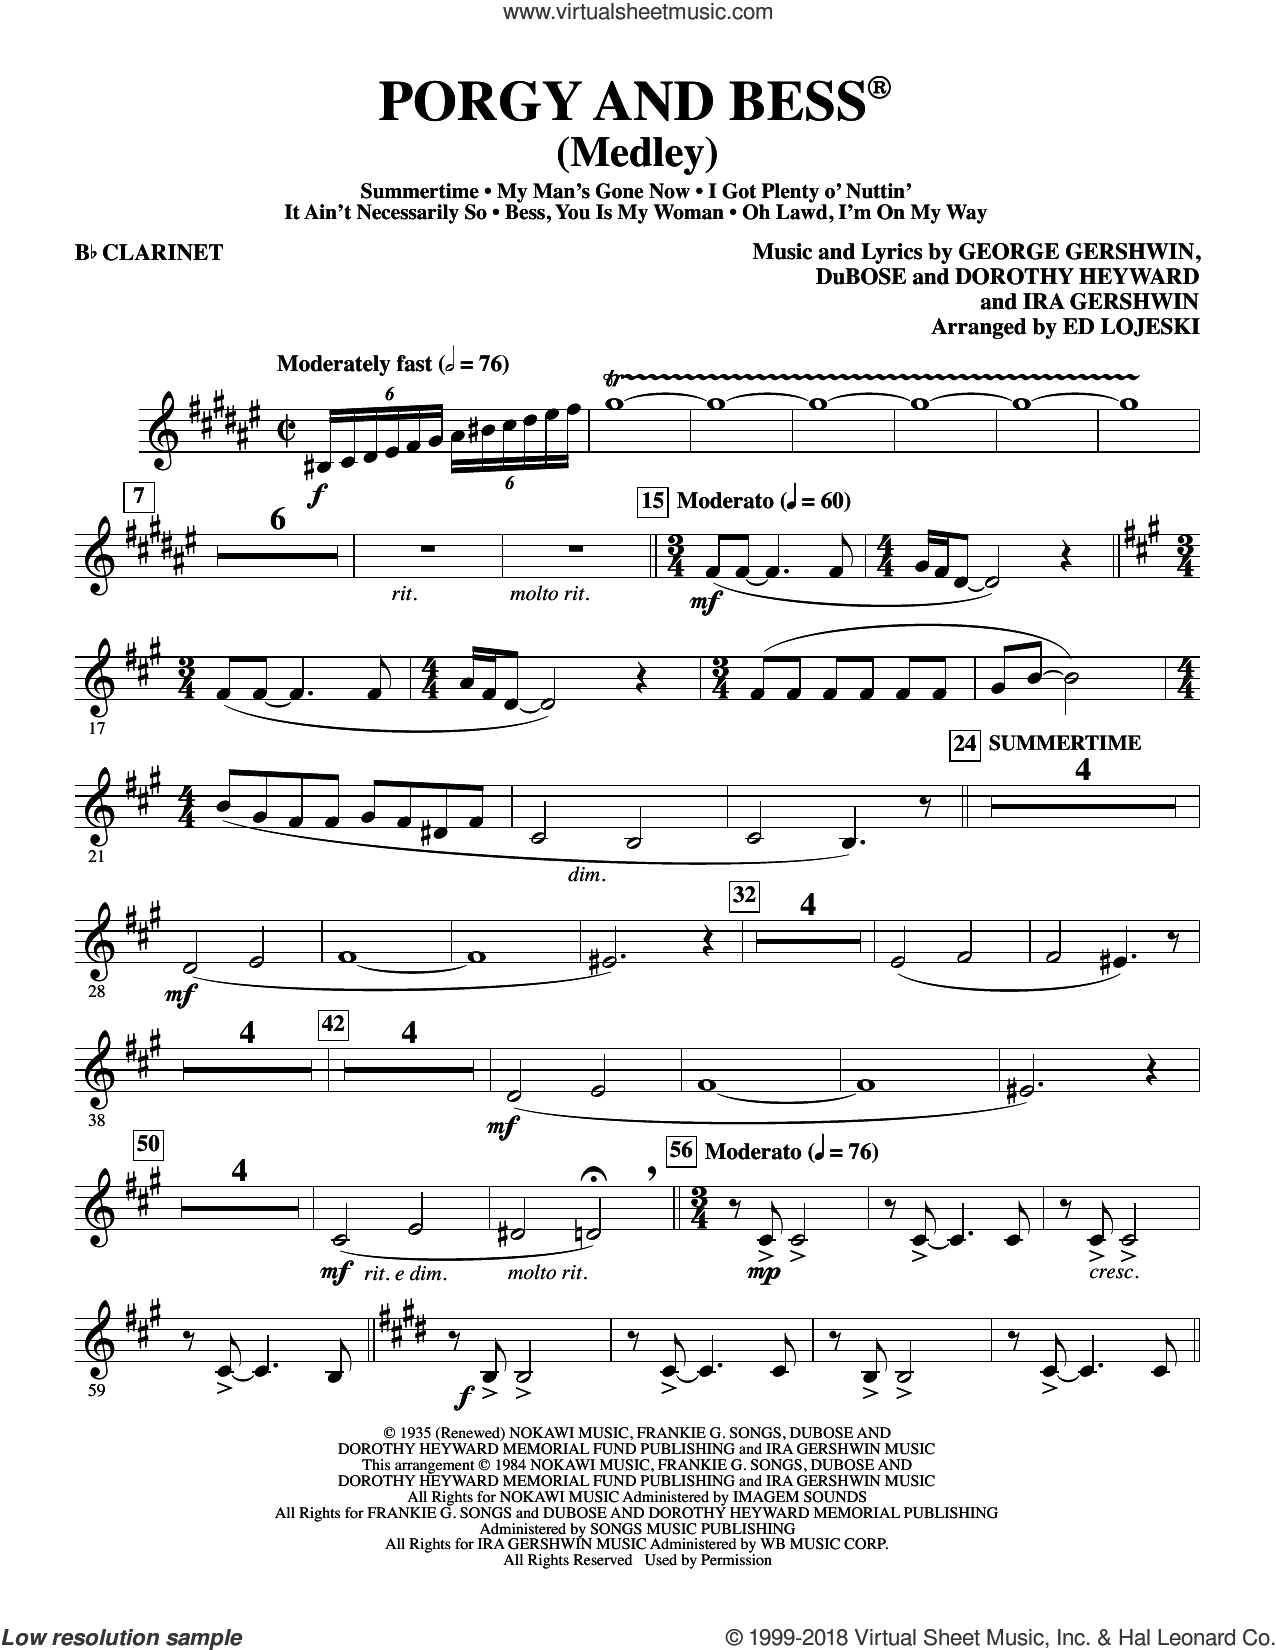 Porgy and Bess (Medley) sheet music for orchestra/band (Bb clarinet) by George Gershwin, Ed Lojeski, Dorothy Heyward, DuBose Heyward and Ira Gershwin, intermediate. Score Image Preview.